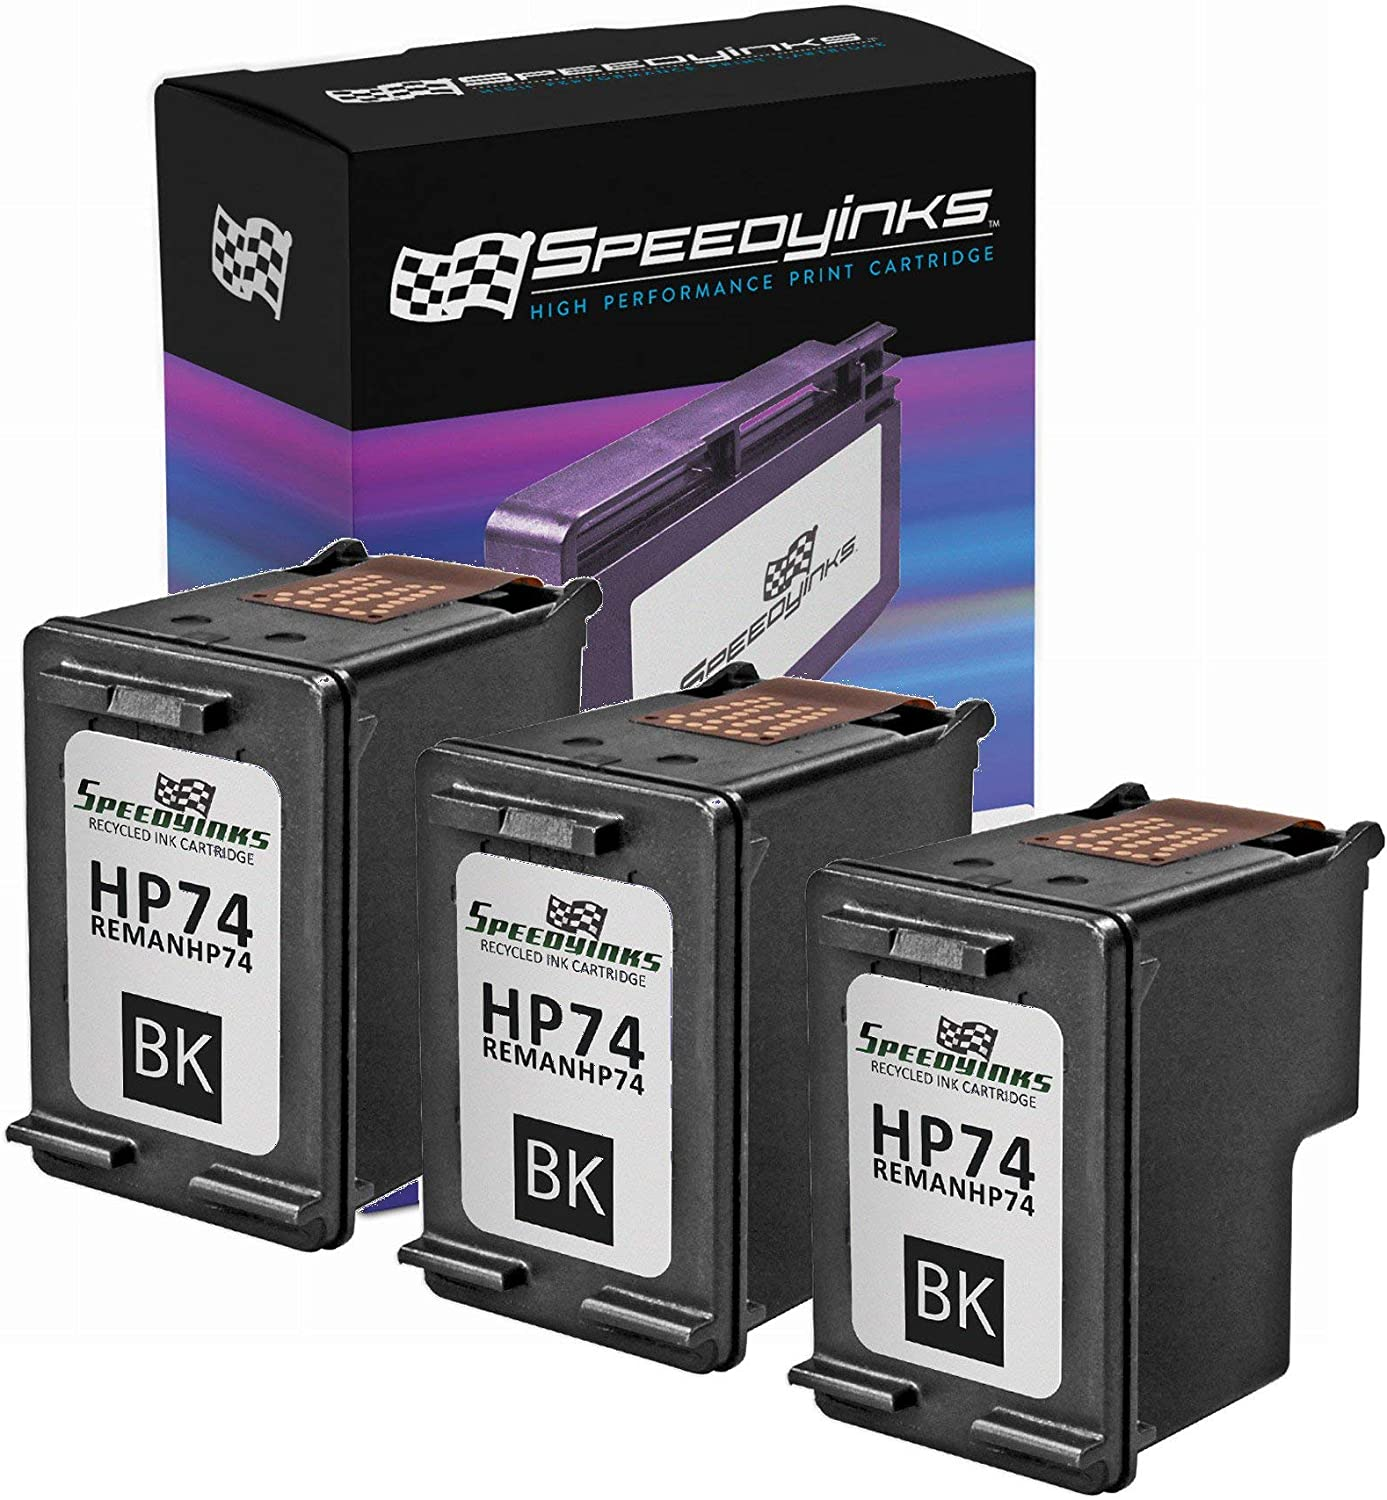 Speedy Inks Remanufactured Ink Cartridge Replacement for HP 74 (Black, 3-Pack)